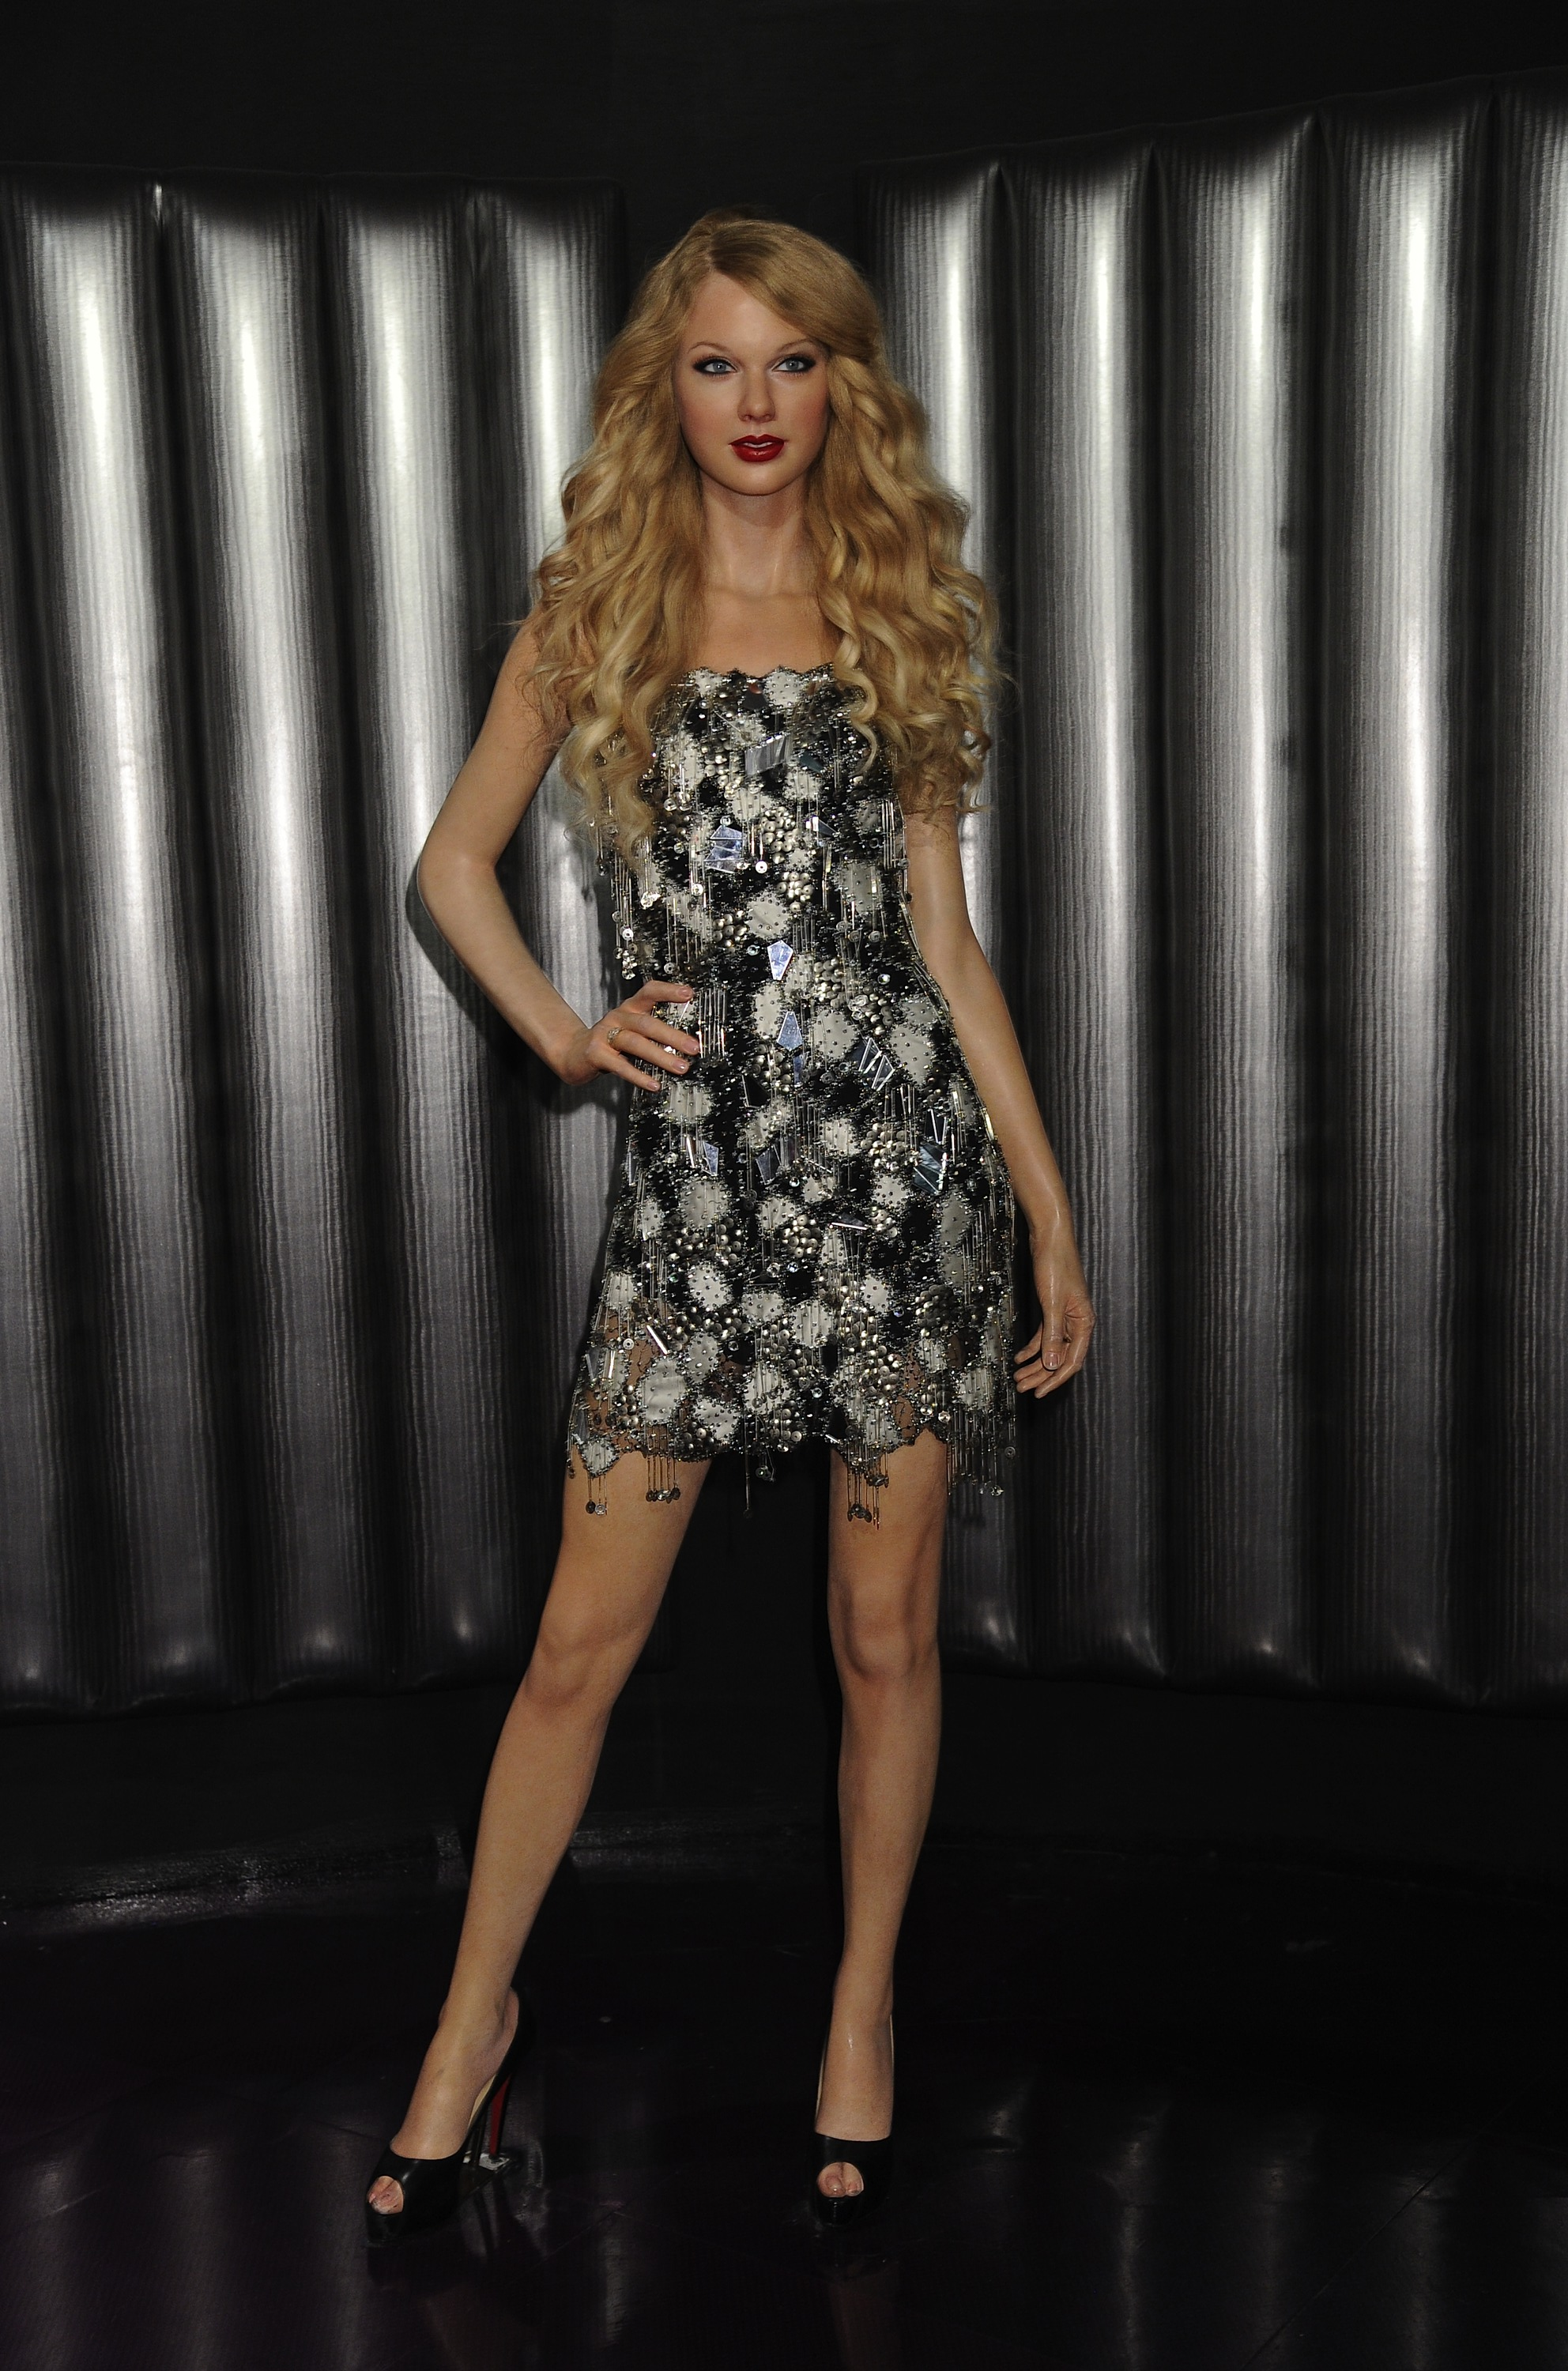 Taylor Swift waxwork